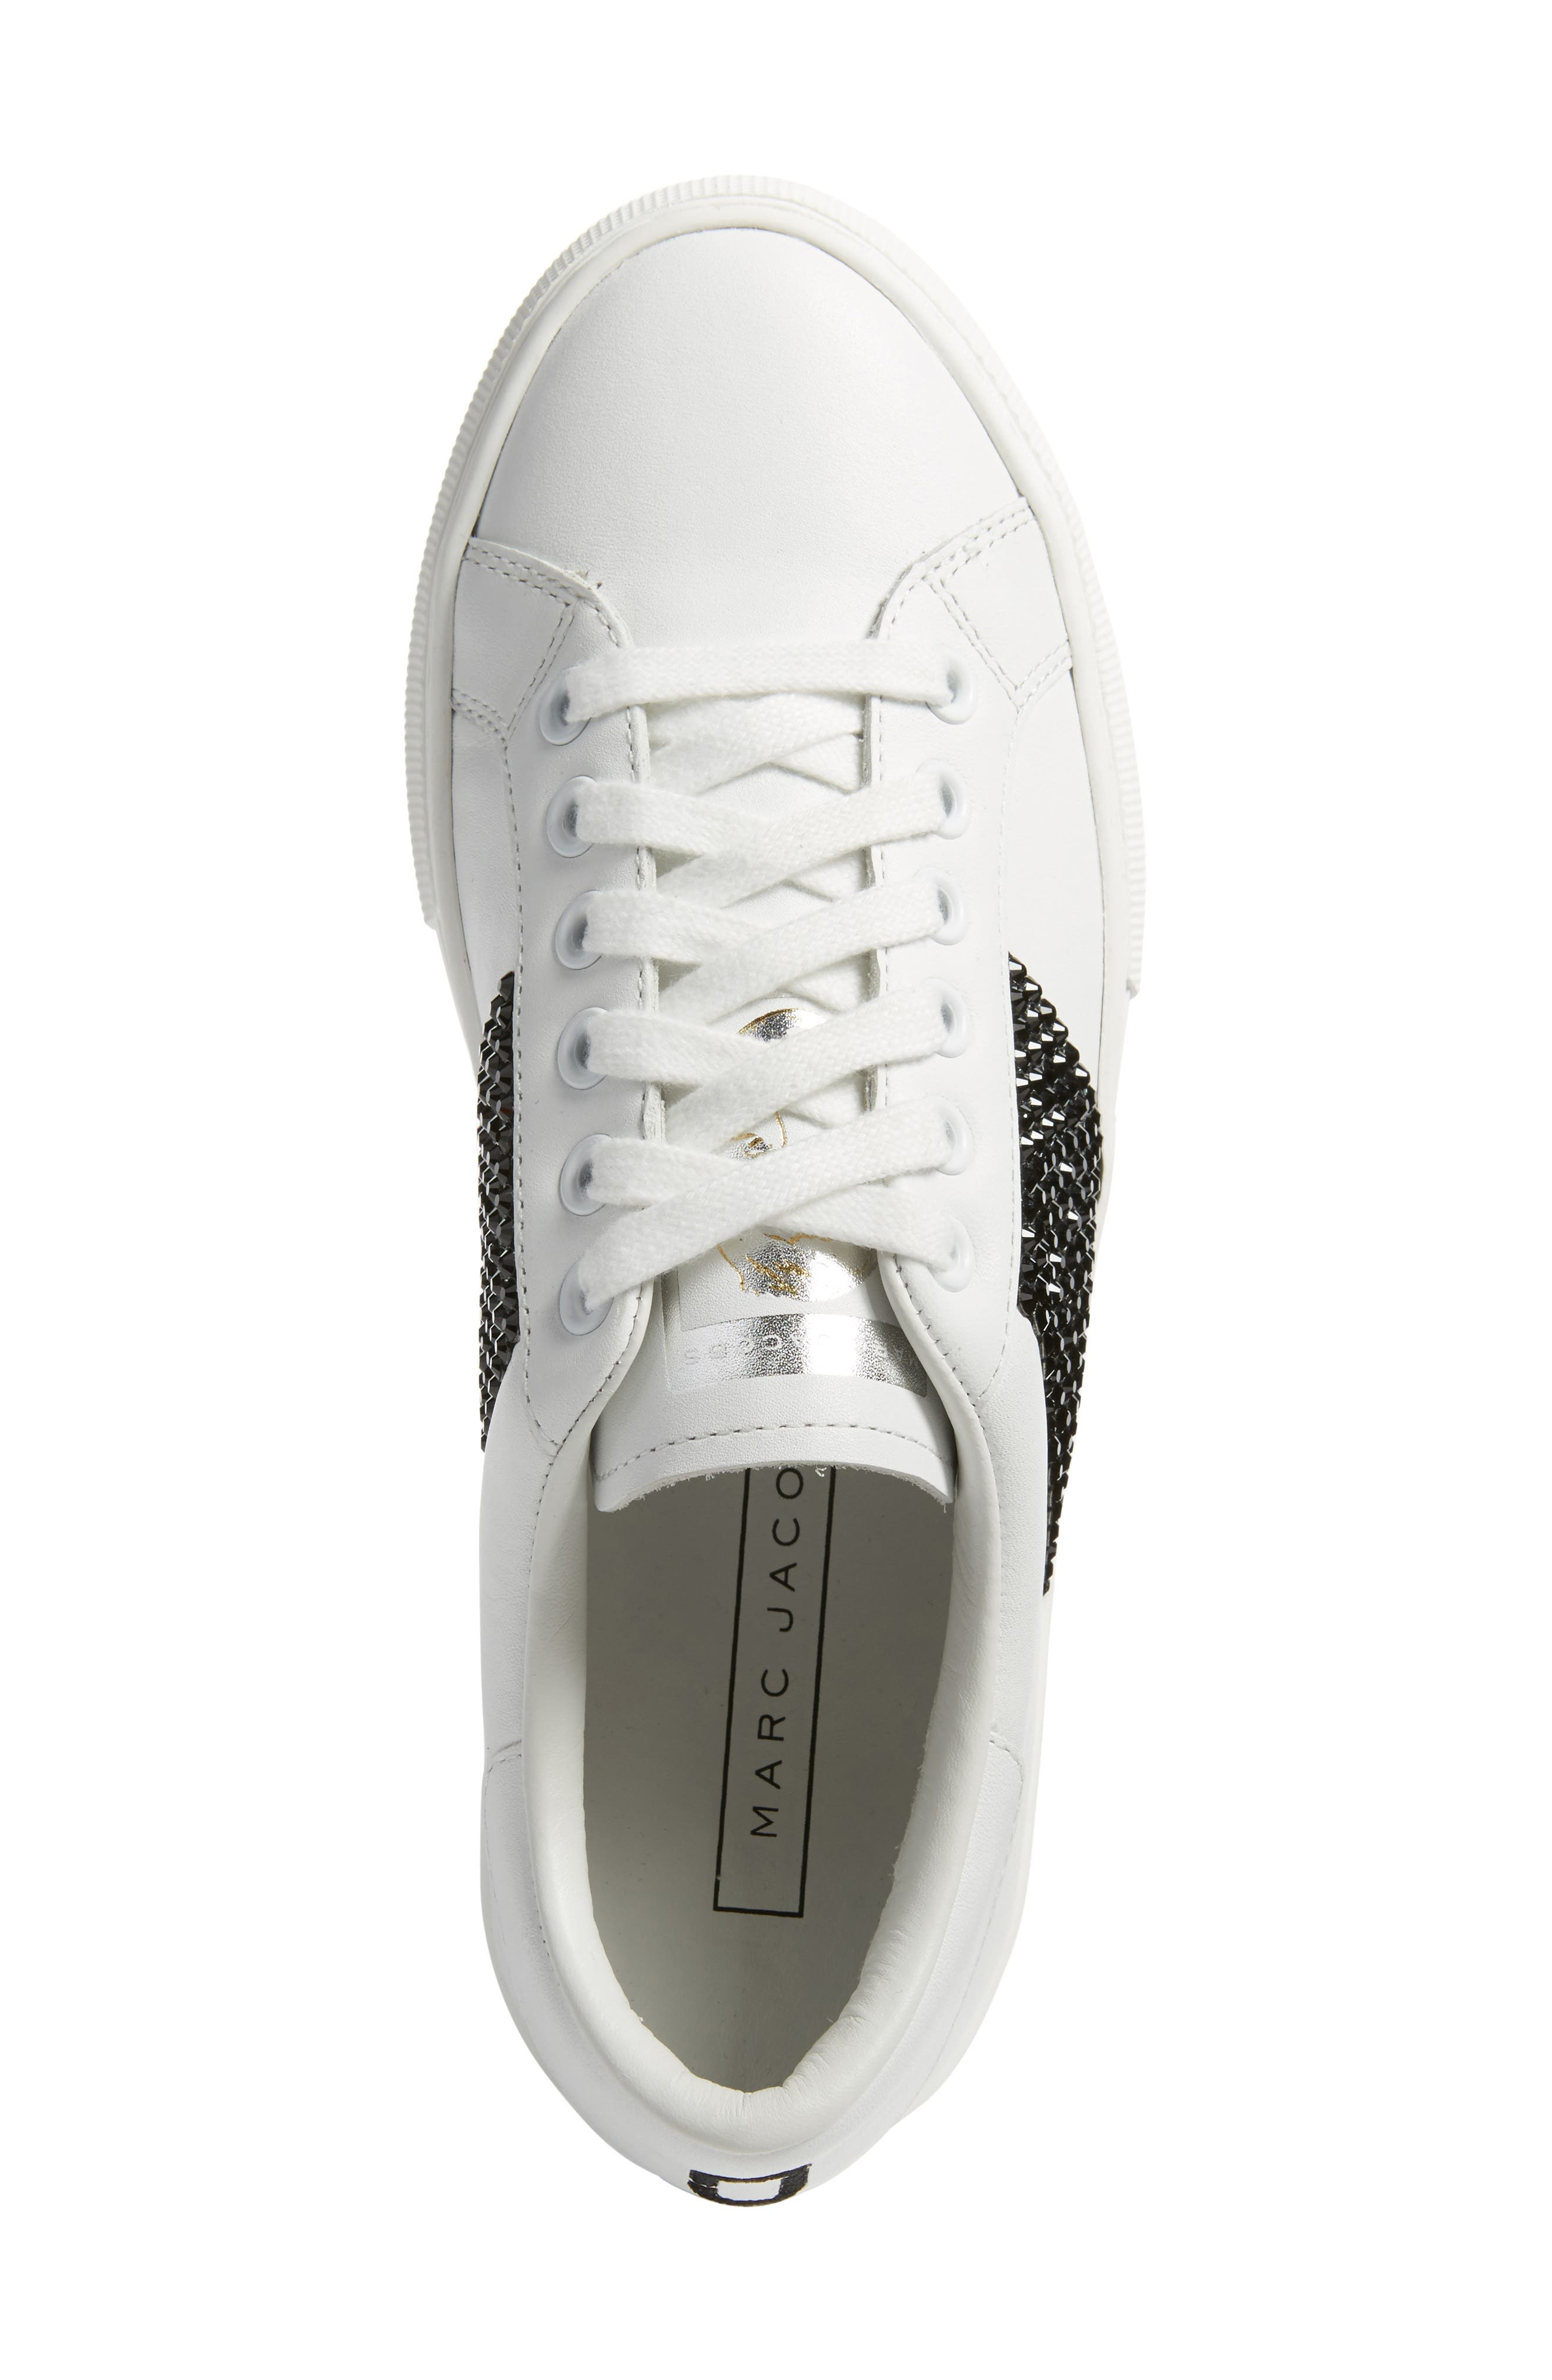 Empire Embellished Sneaker,                             Alternate thumbnail 5, color,                             160